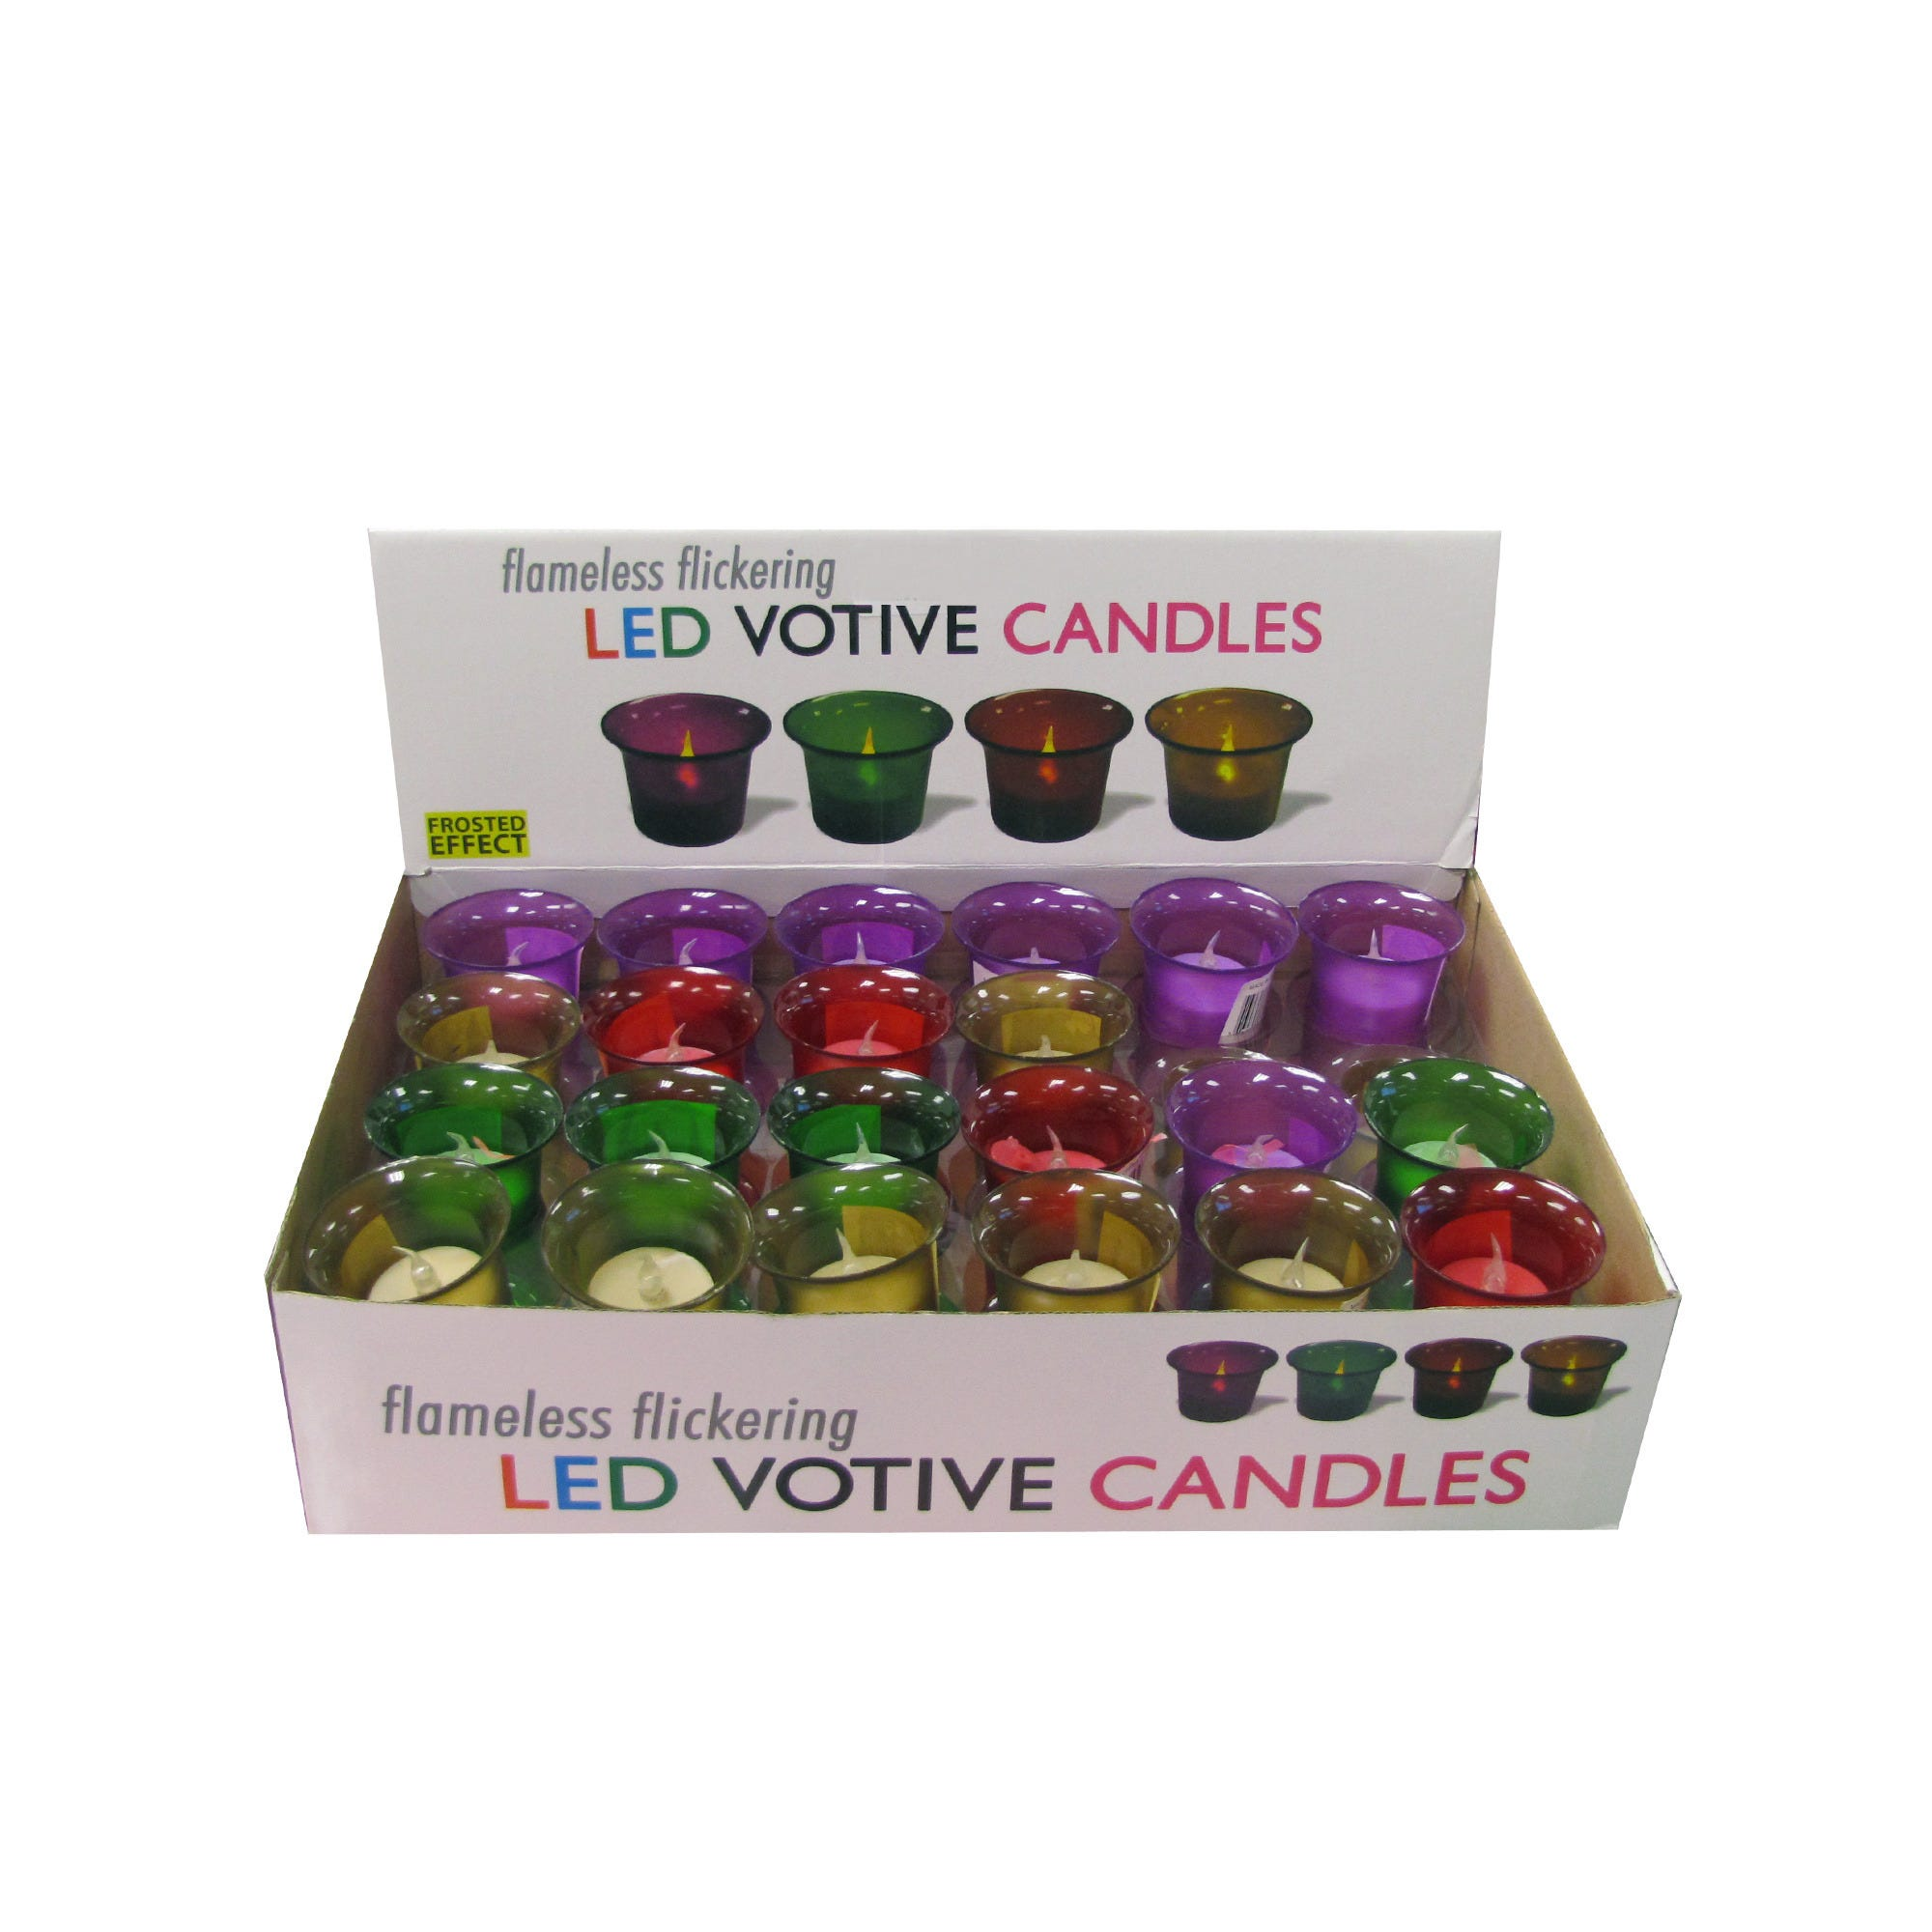 Flameless Flickering LED VOTIVE CANDLE Display- Qty 48